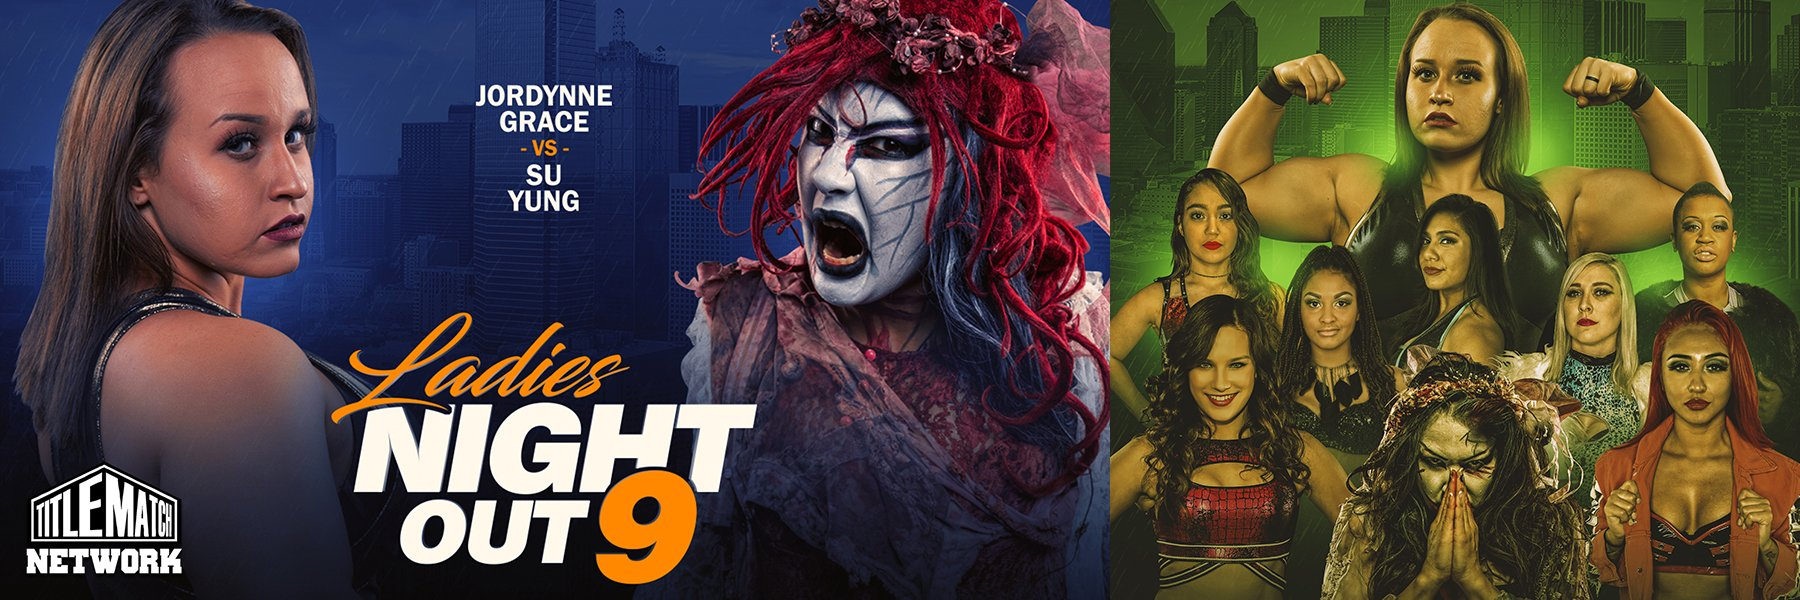 Ladies Night Out 9: Jordynne Grace vs Su Yung, Rok-C vs Heather Monroe